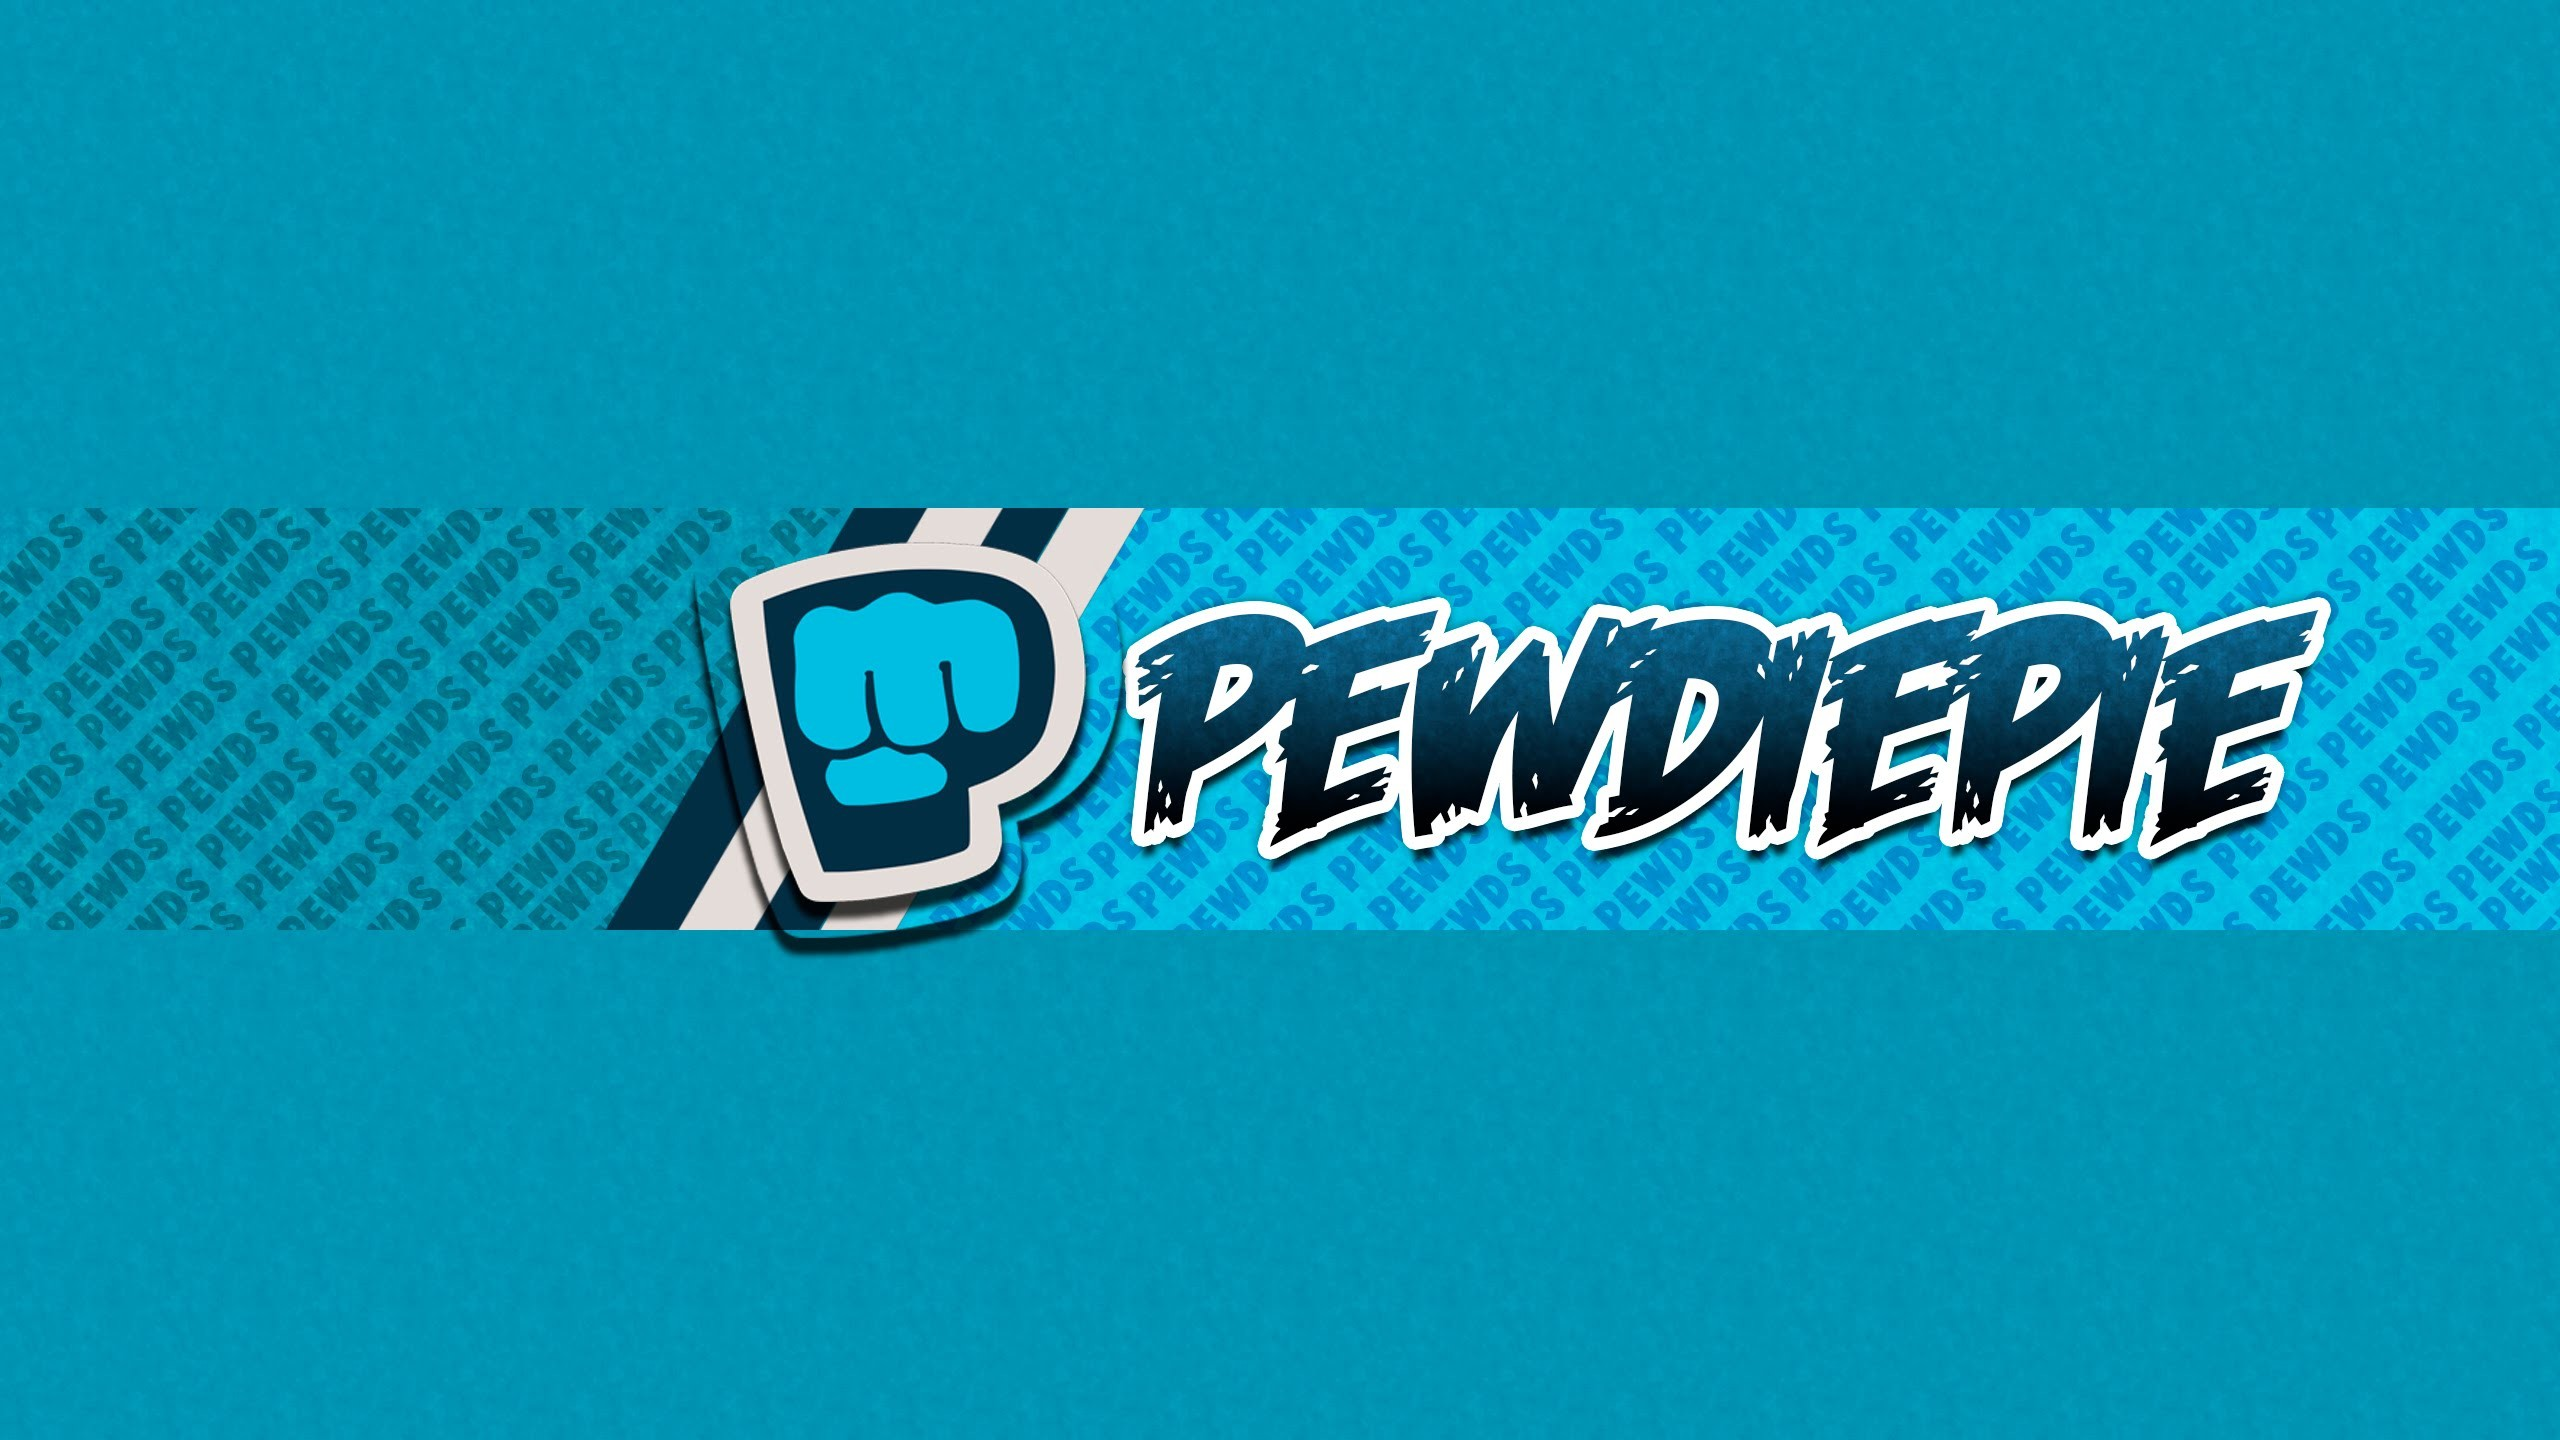 2560x1440 Celebrity - PewDiePie Wallpaper